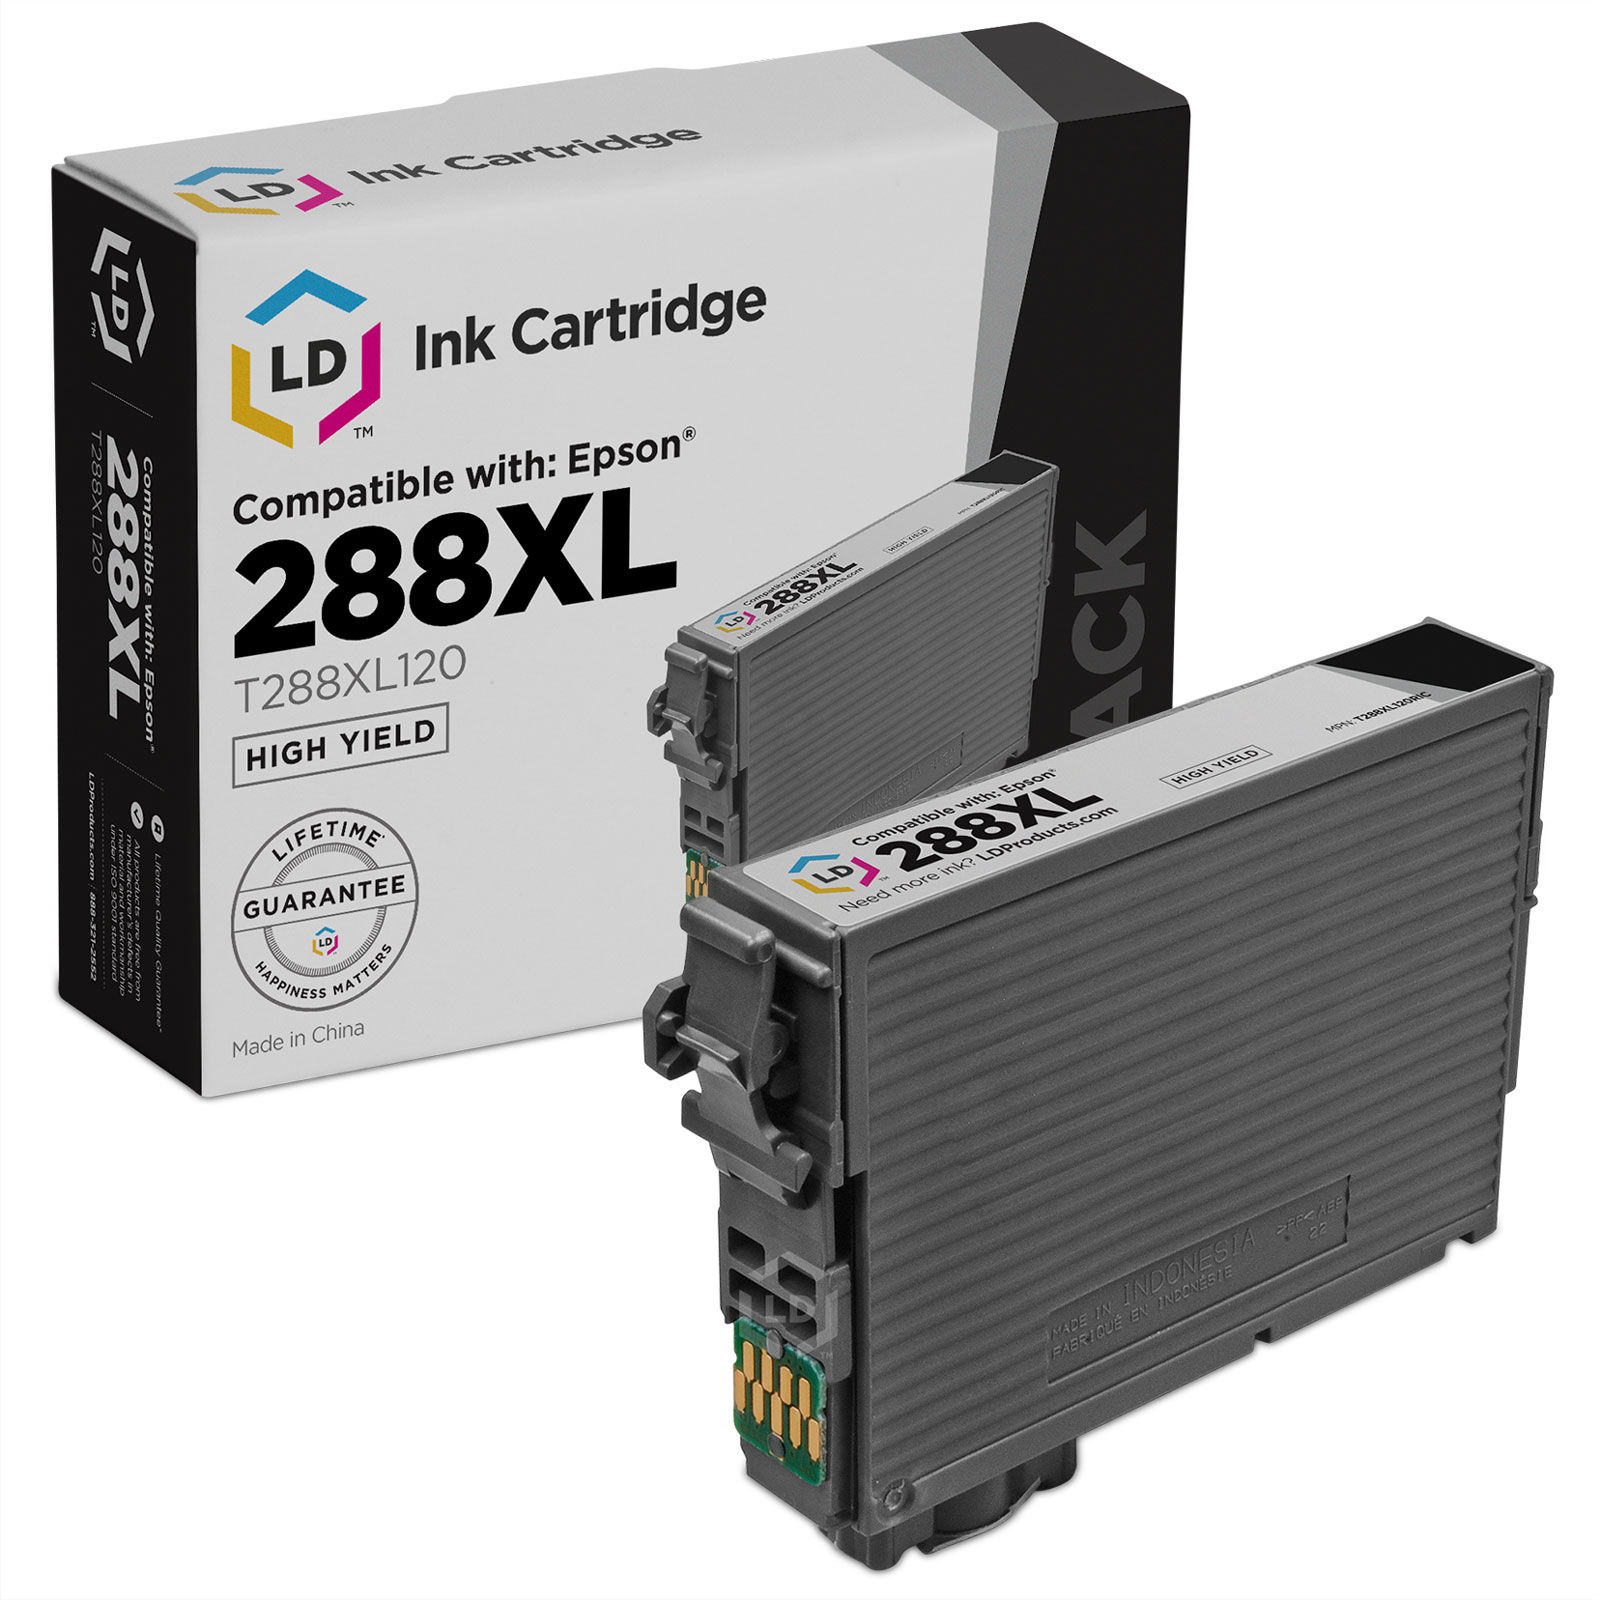 LD Remanufactured Epson 288 / 288XL / T288XL120 High Yield Black Ink Cartridge for use in Expression XP-330, XP-430, XP-434 & XP-440